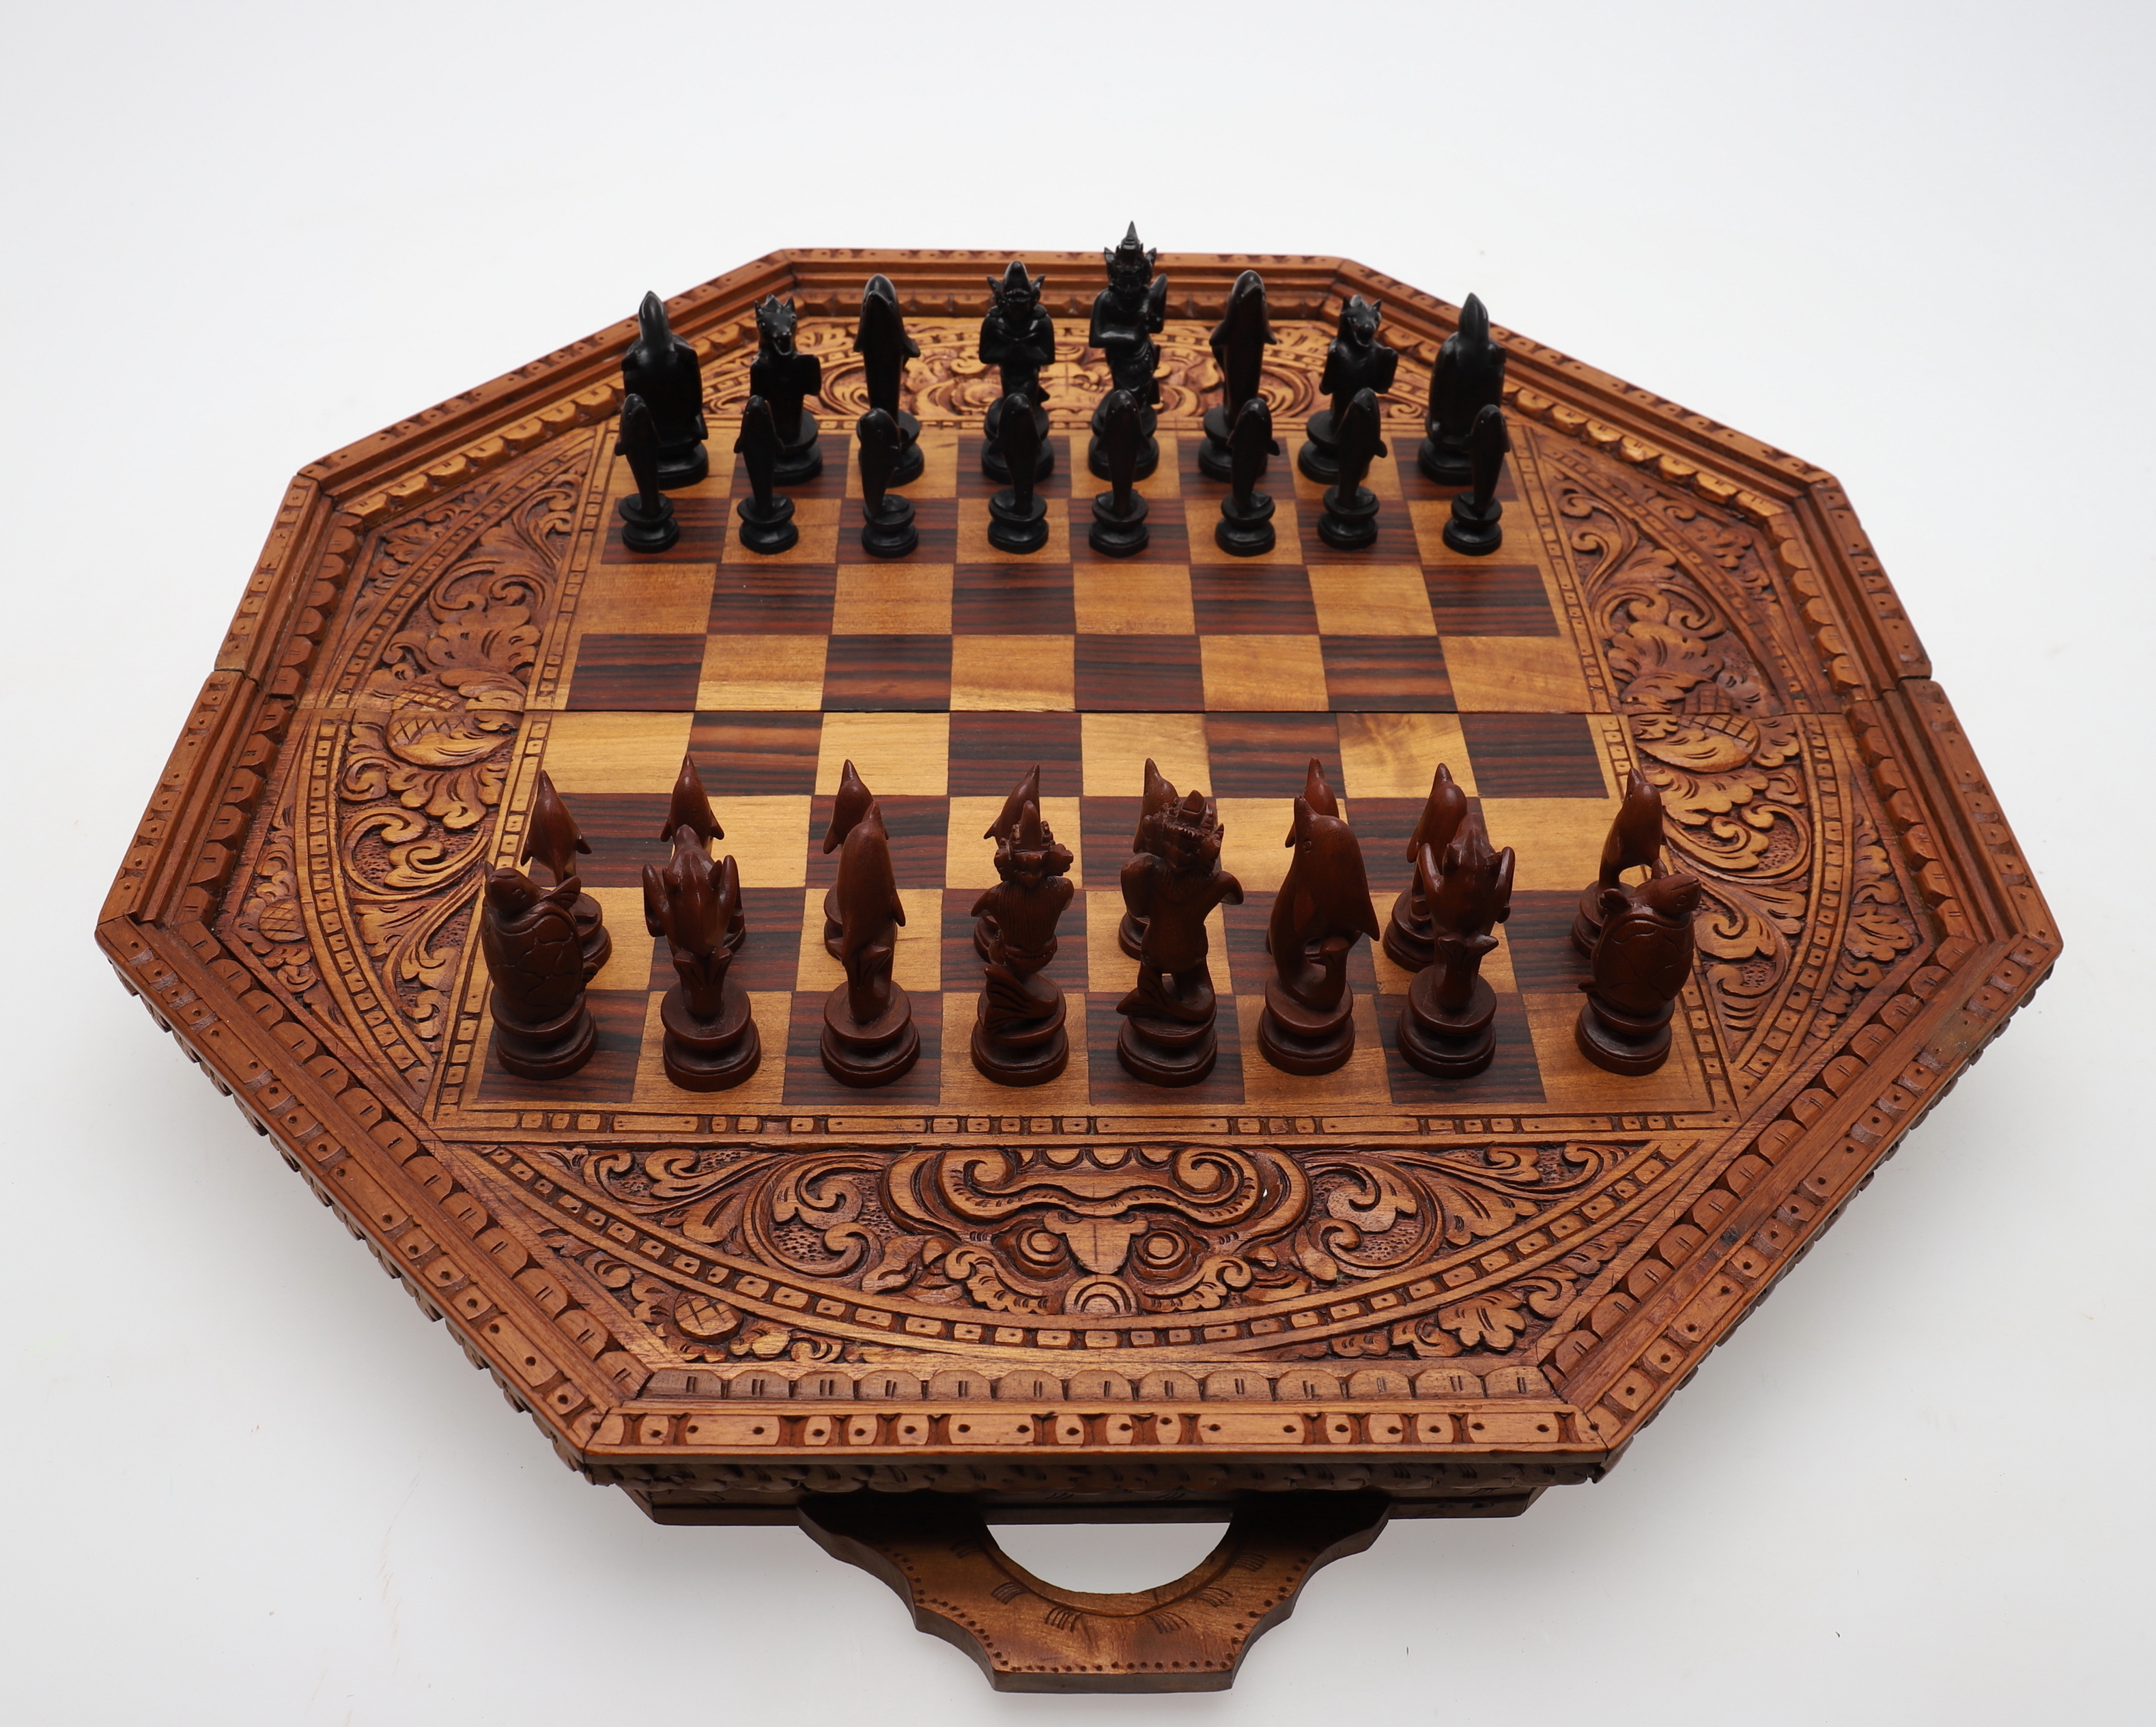 A Modern Chess Set With Carved Mythical Sea Figures Other